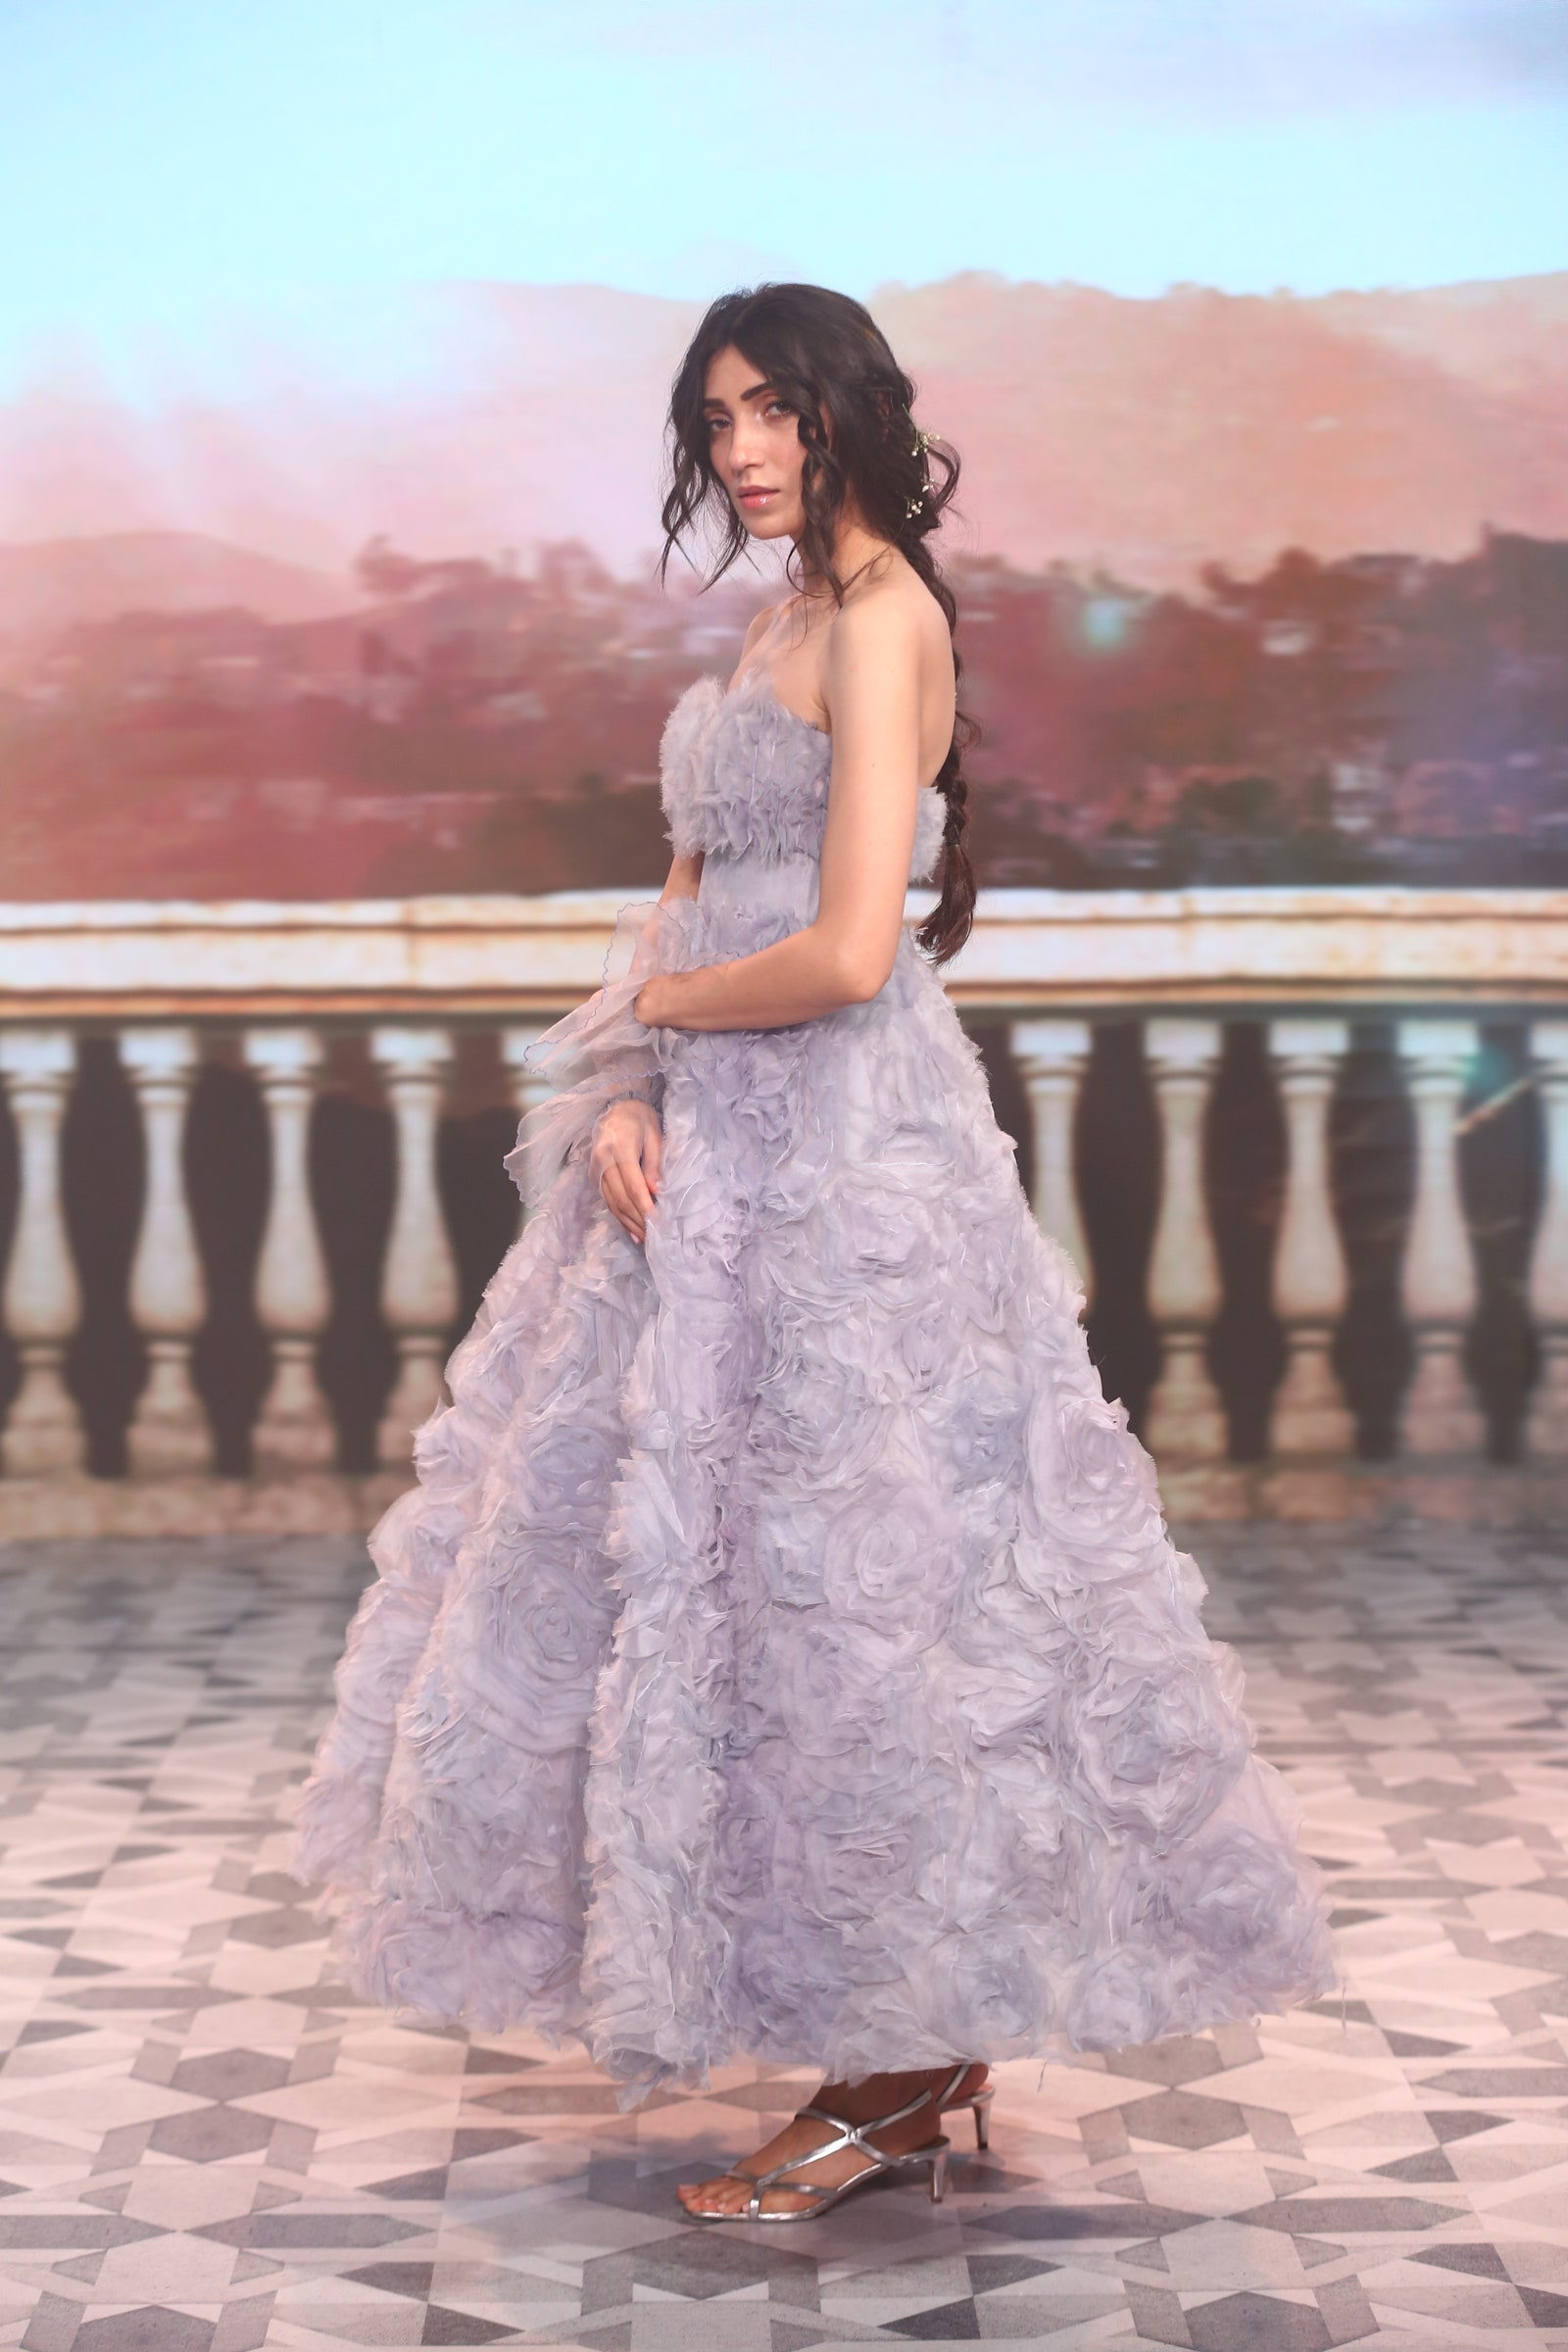 A lady wearing a floor-length lilac ball gown.